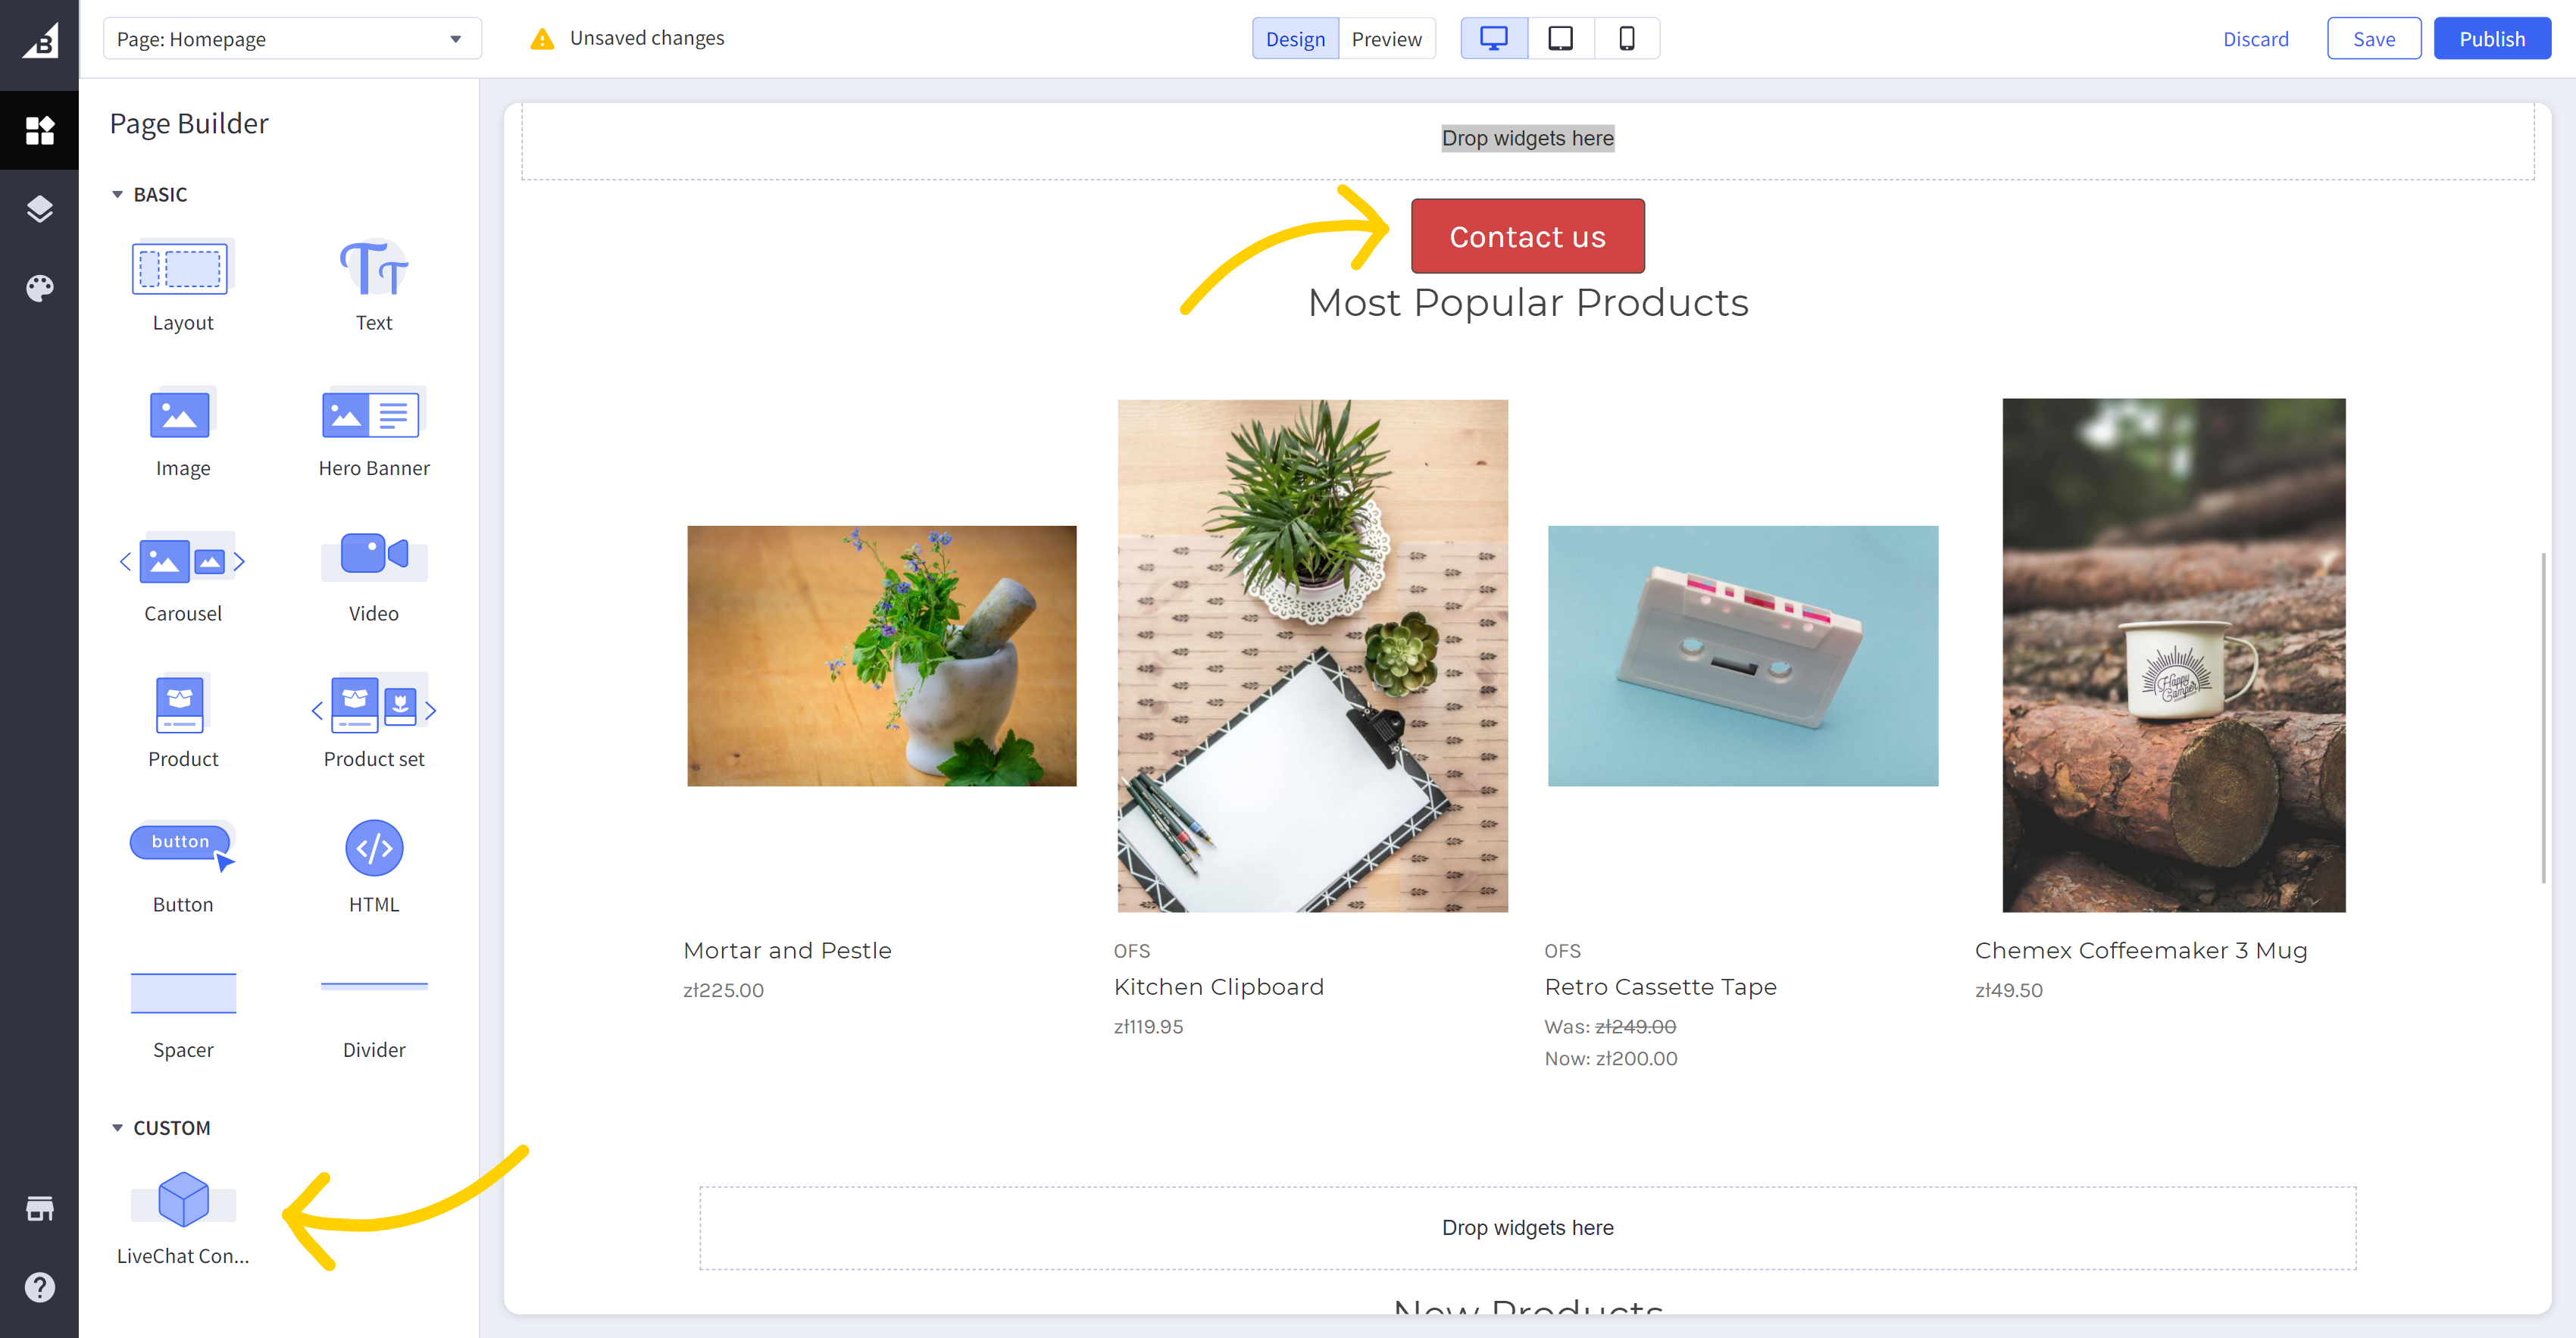 Page Builder widget in the BigCommerce admin panel